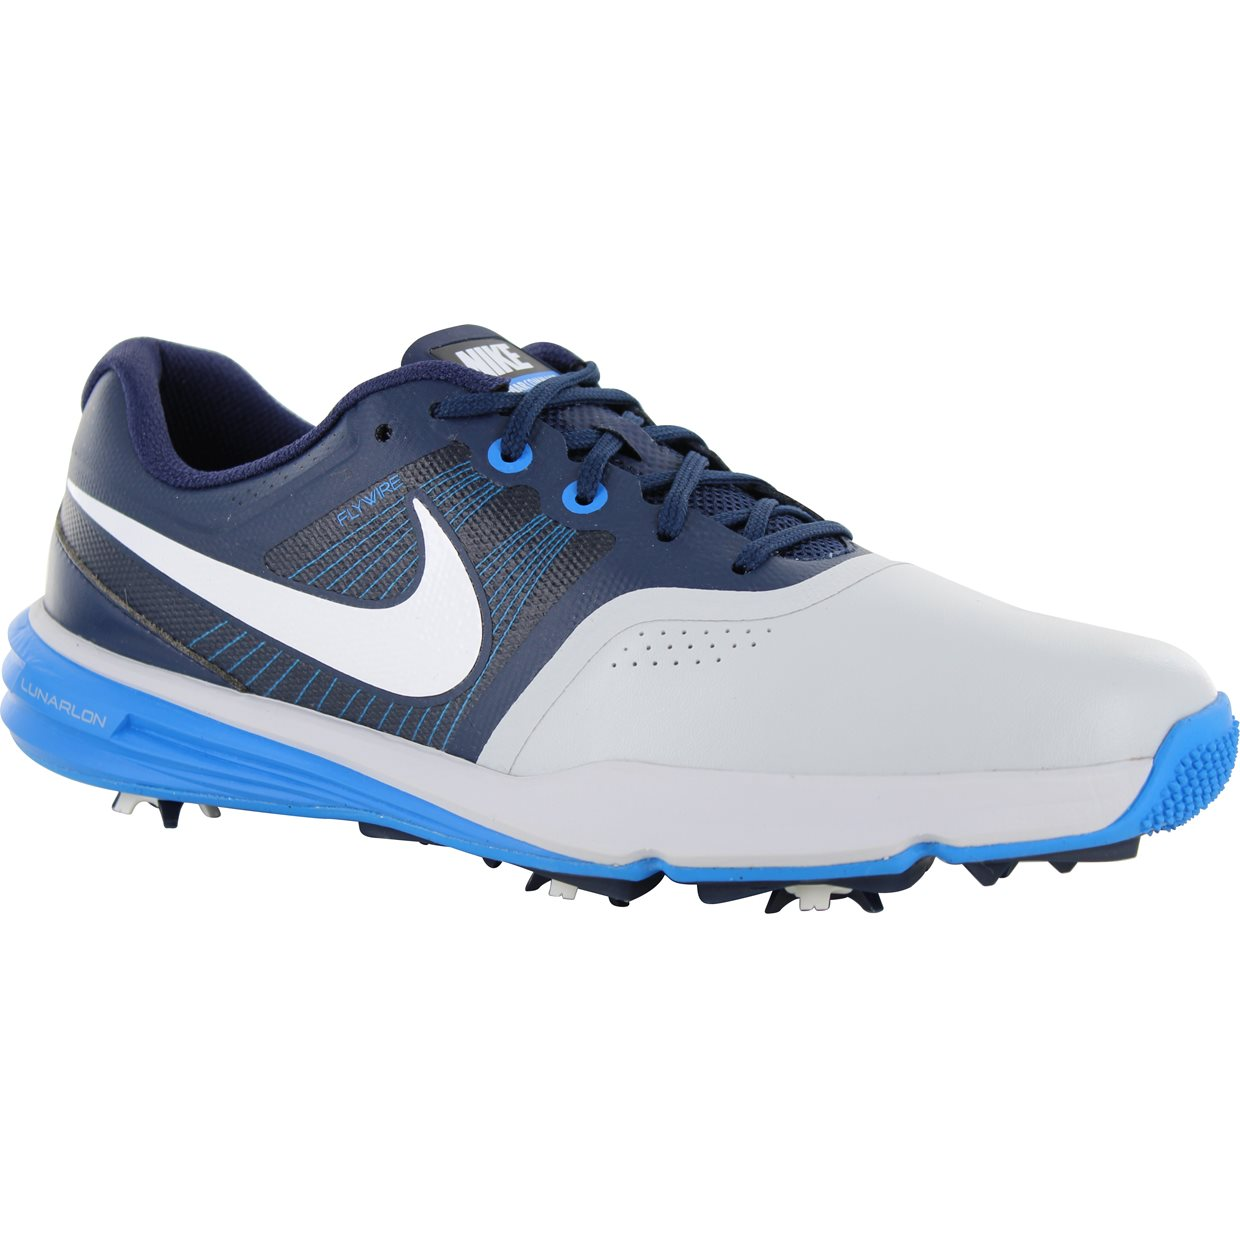 Nike Golf Shoes Size  Wide